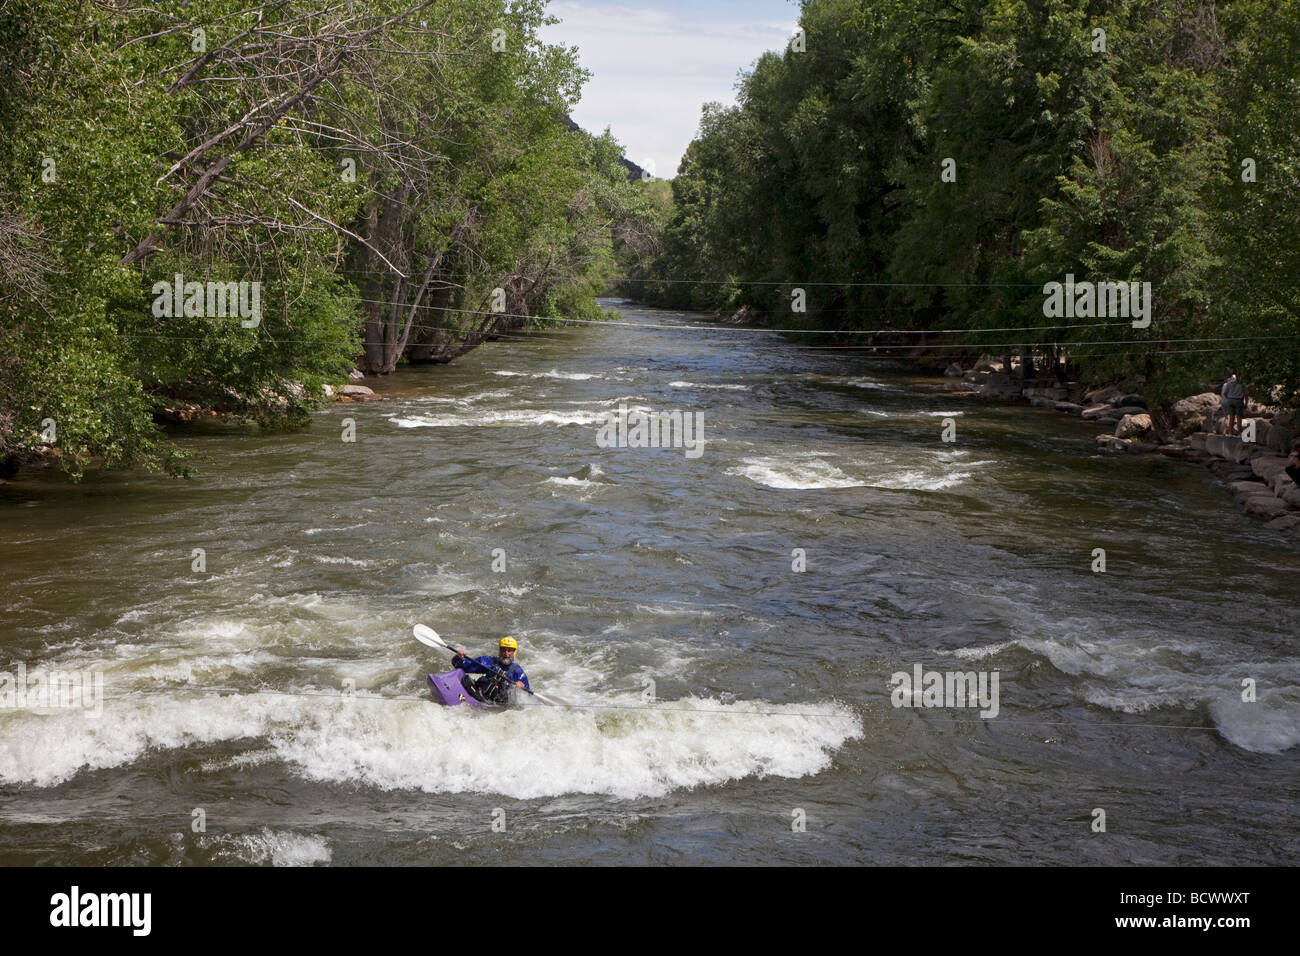 A man practices his kayaking technique in rapids on the Arkansas River in Salida, Colorado - Stock Image